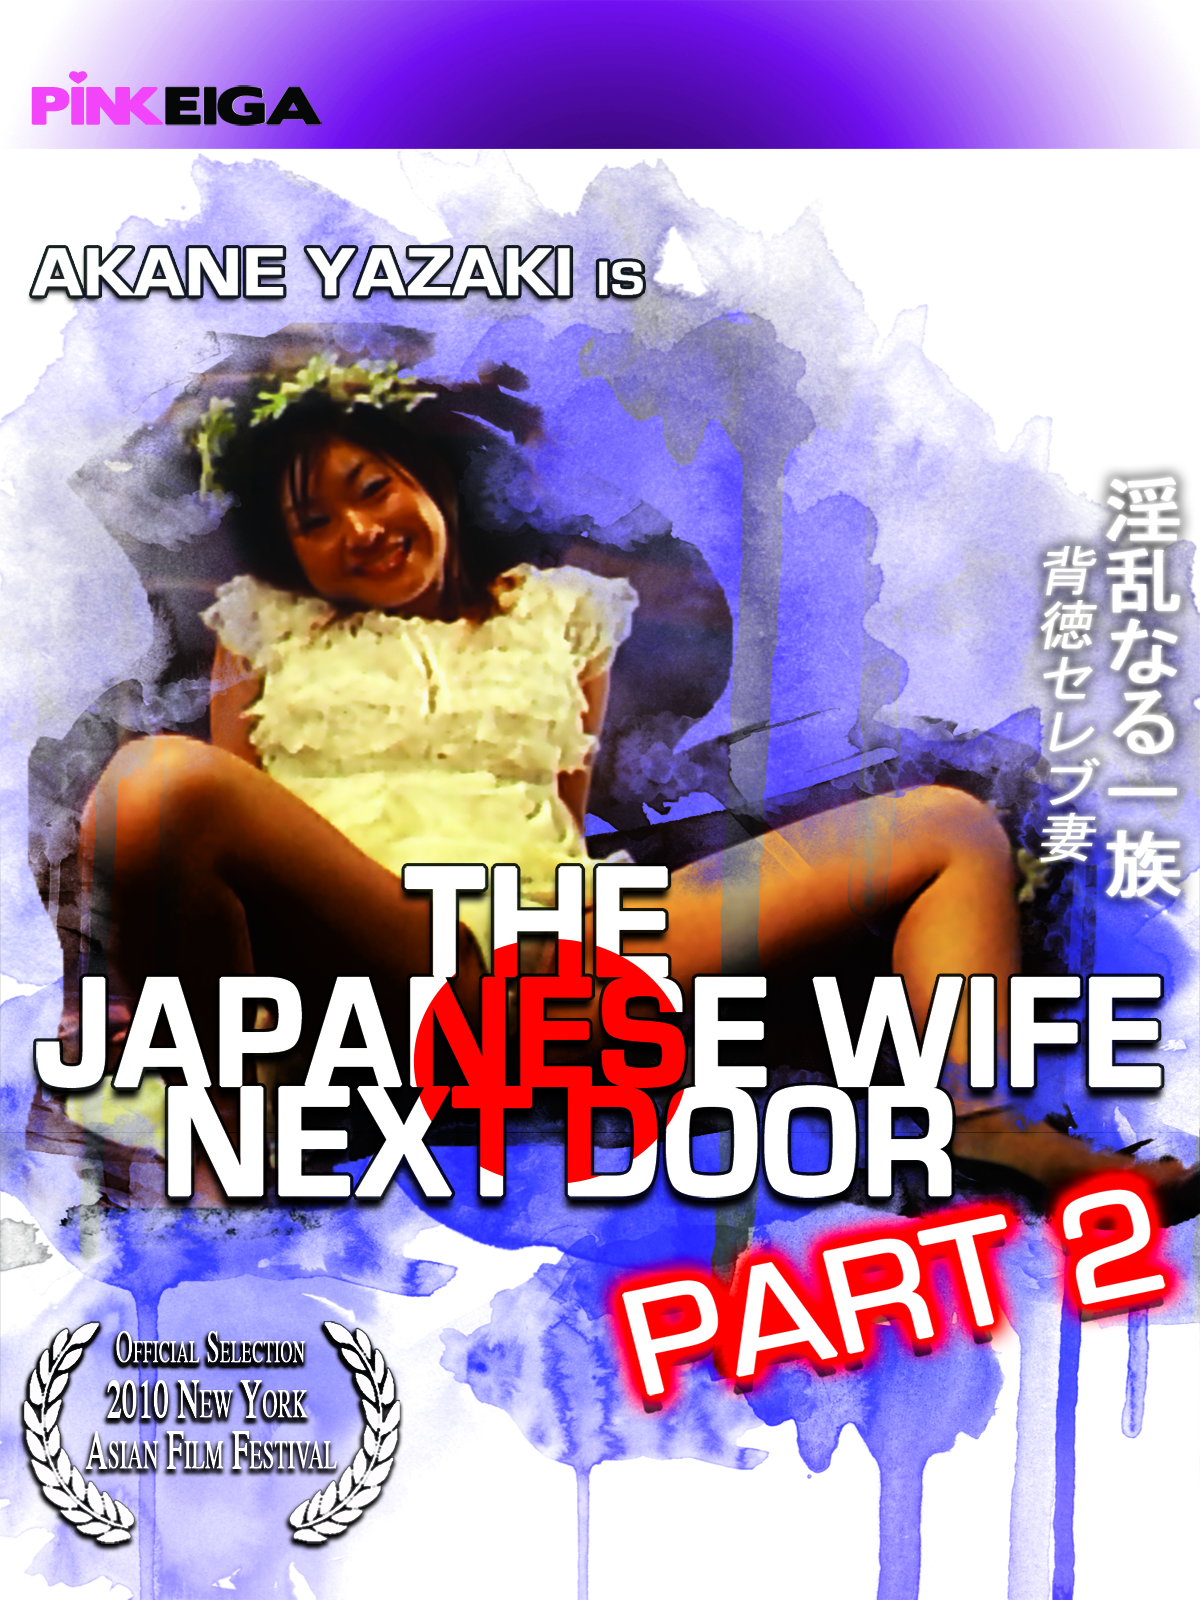 The Japanese Wife Next Door: Part 2  -HD- DOWNLOAD TO OWN